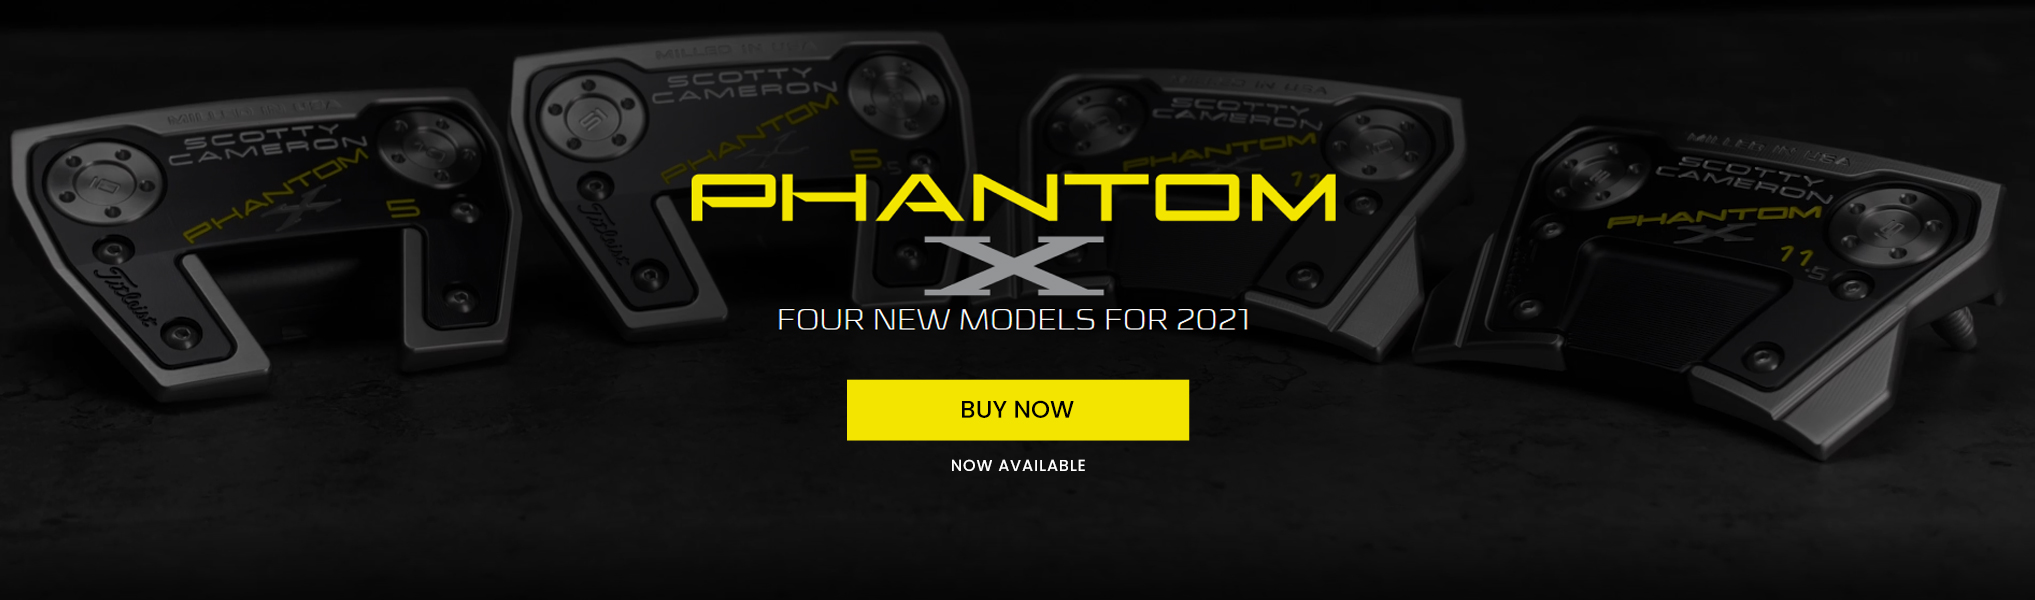 Scotty Cameron Phantom X Buy Now